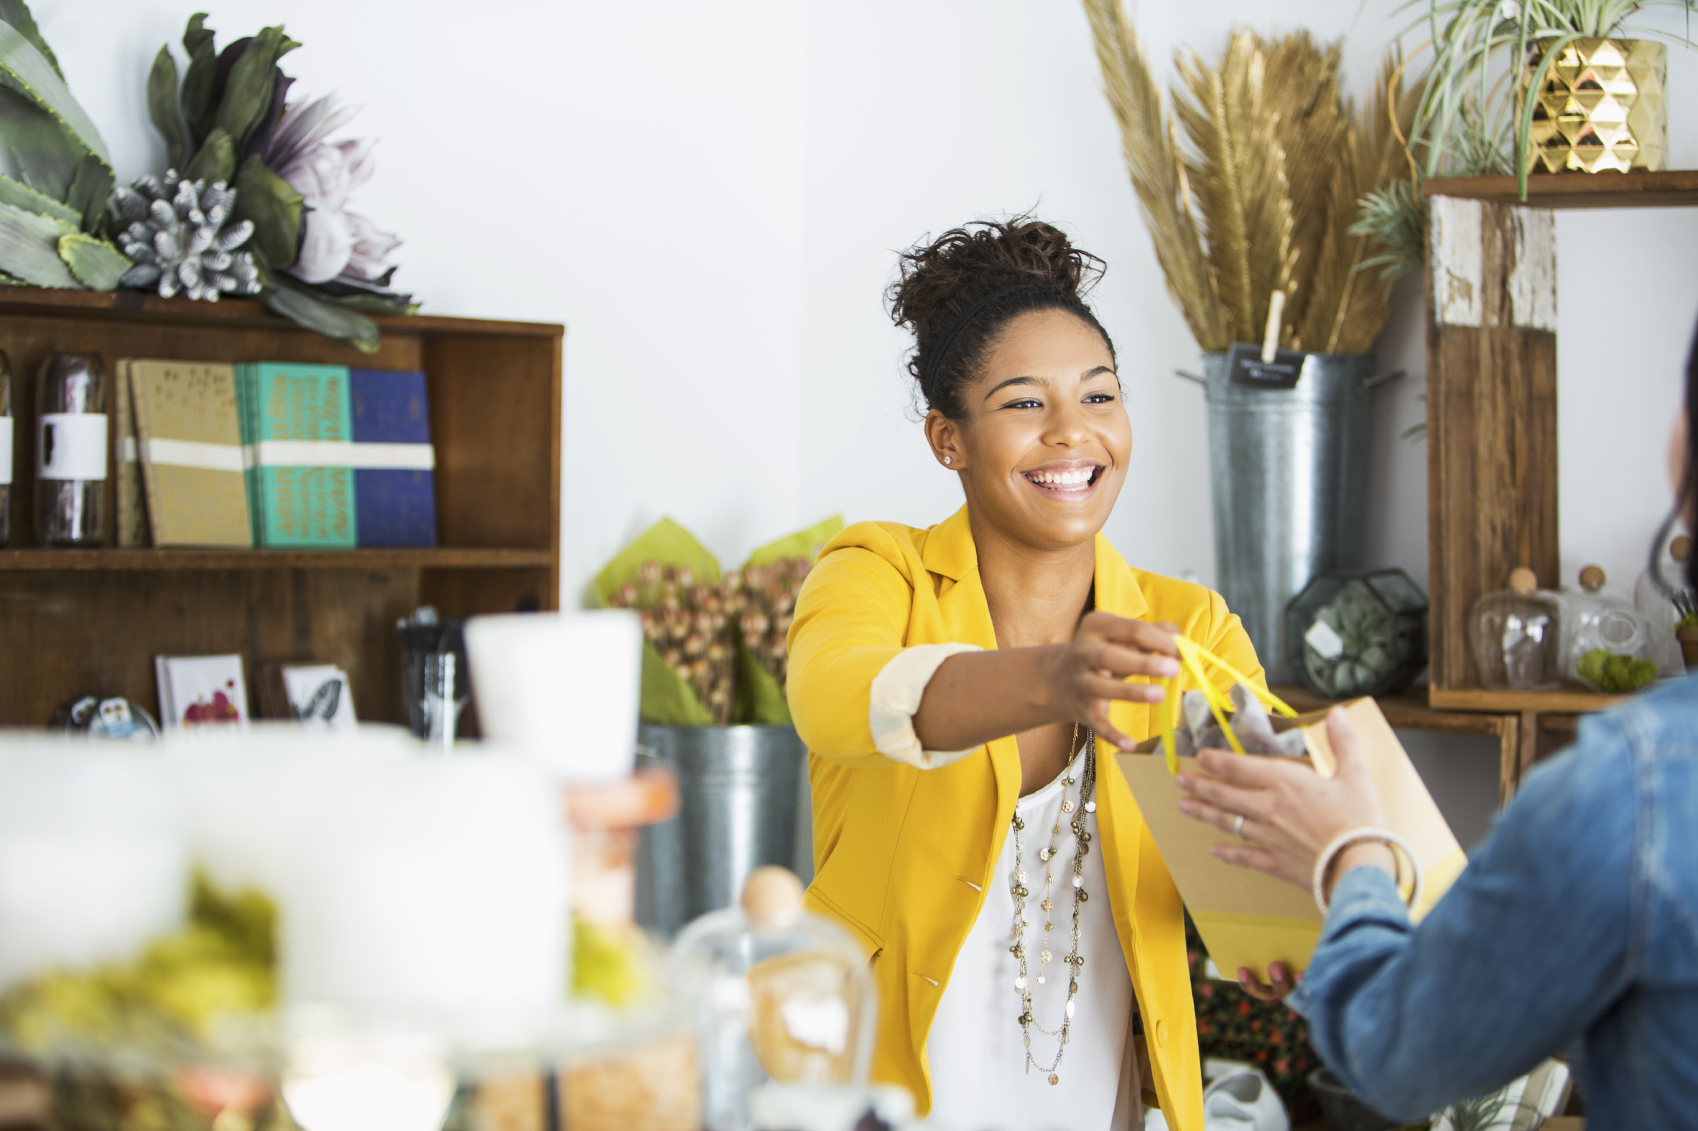 What Are Good Customer Service Skills?